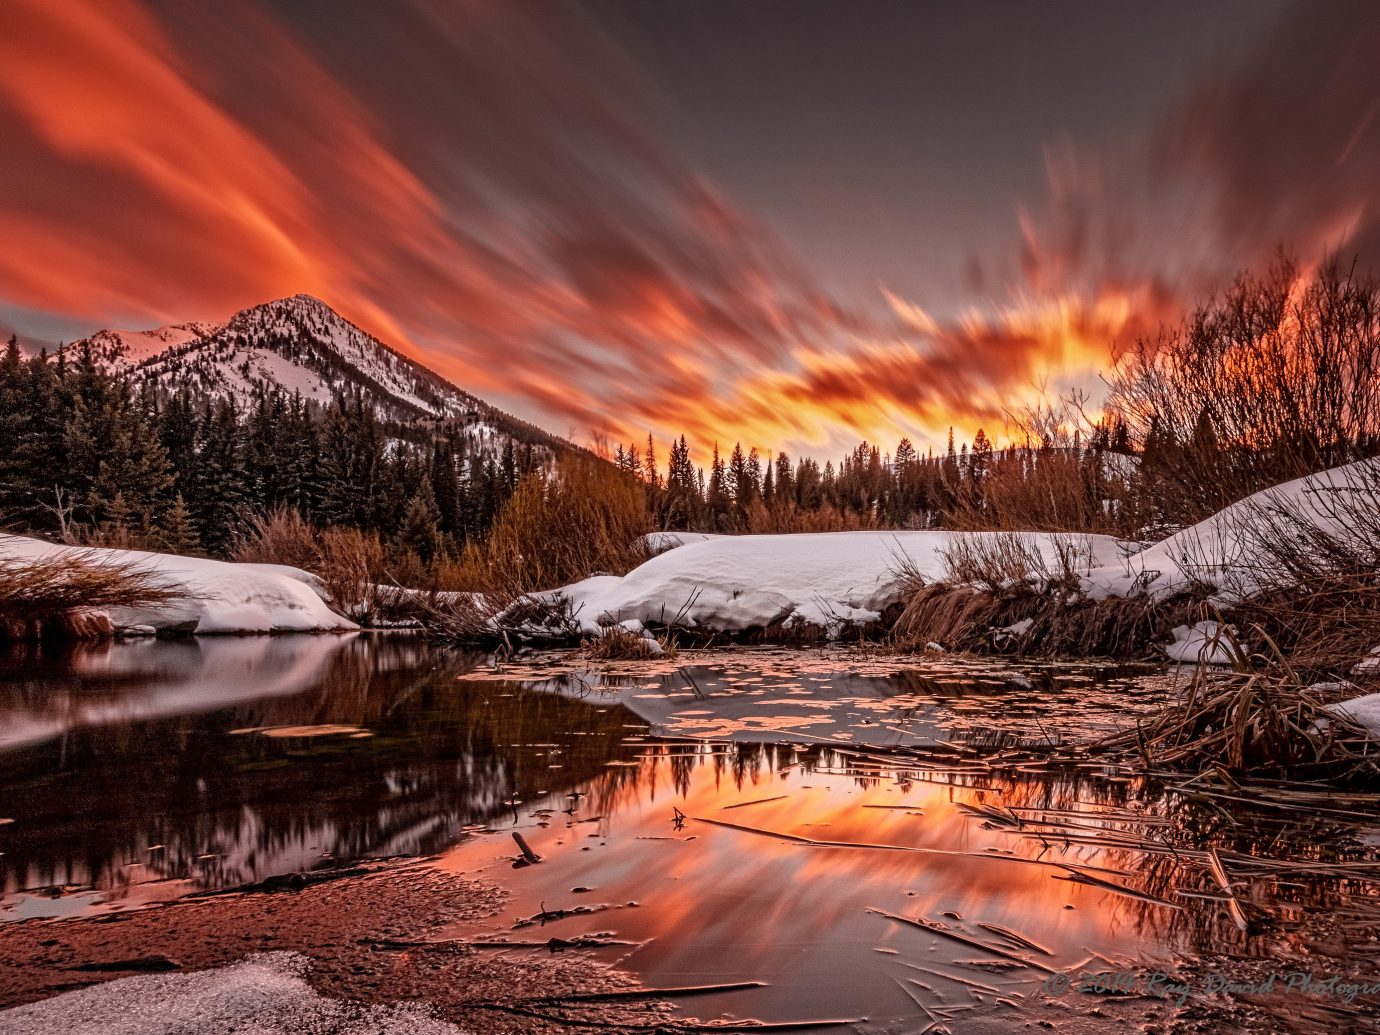 Trip Ideas outdoor sky snow Nature reflection wilderness sunrise Winter pond geological phenomenon dawn Sunset season morning evening landscape mountain dusk canyon autumn area surrounded several